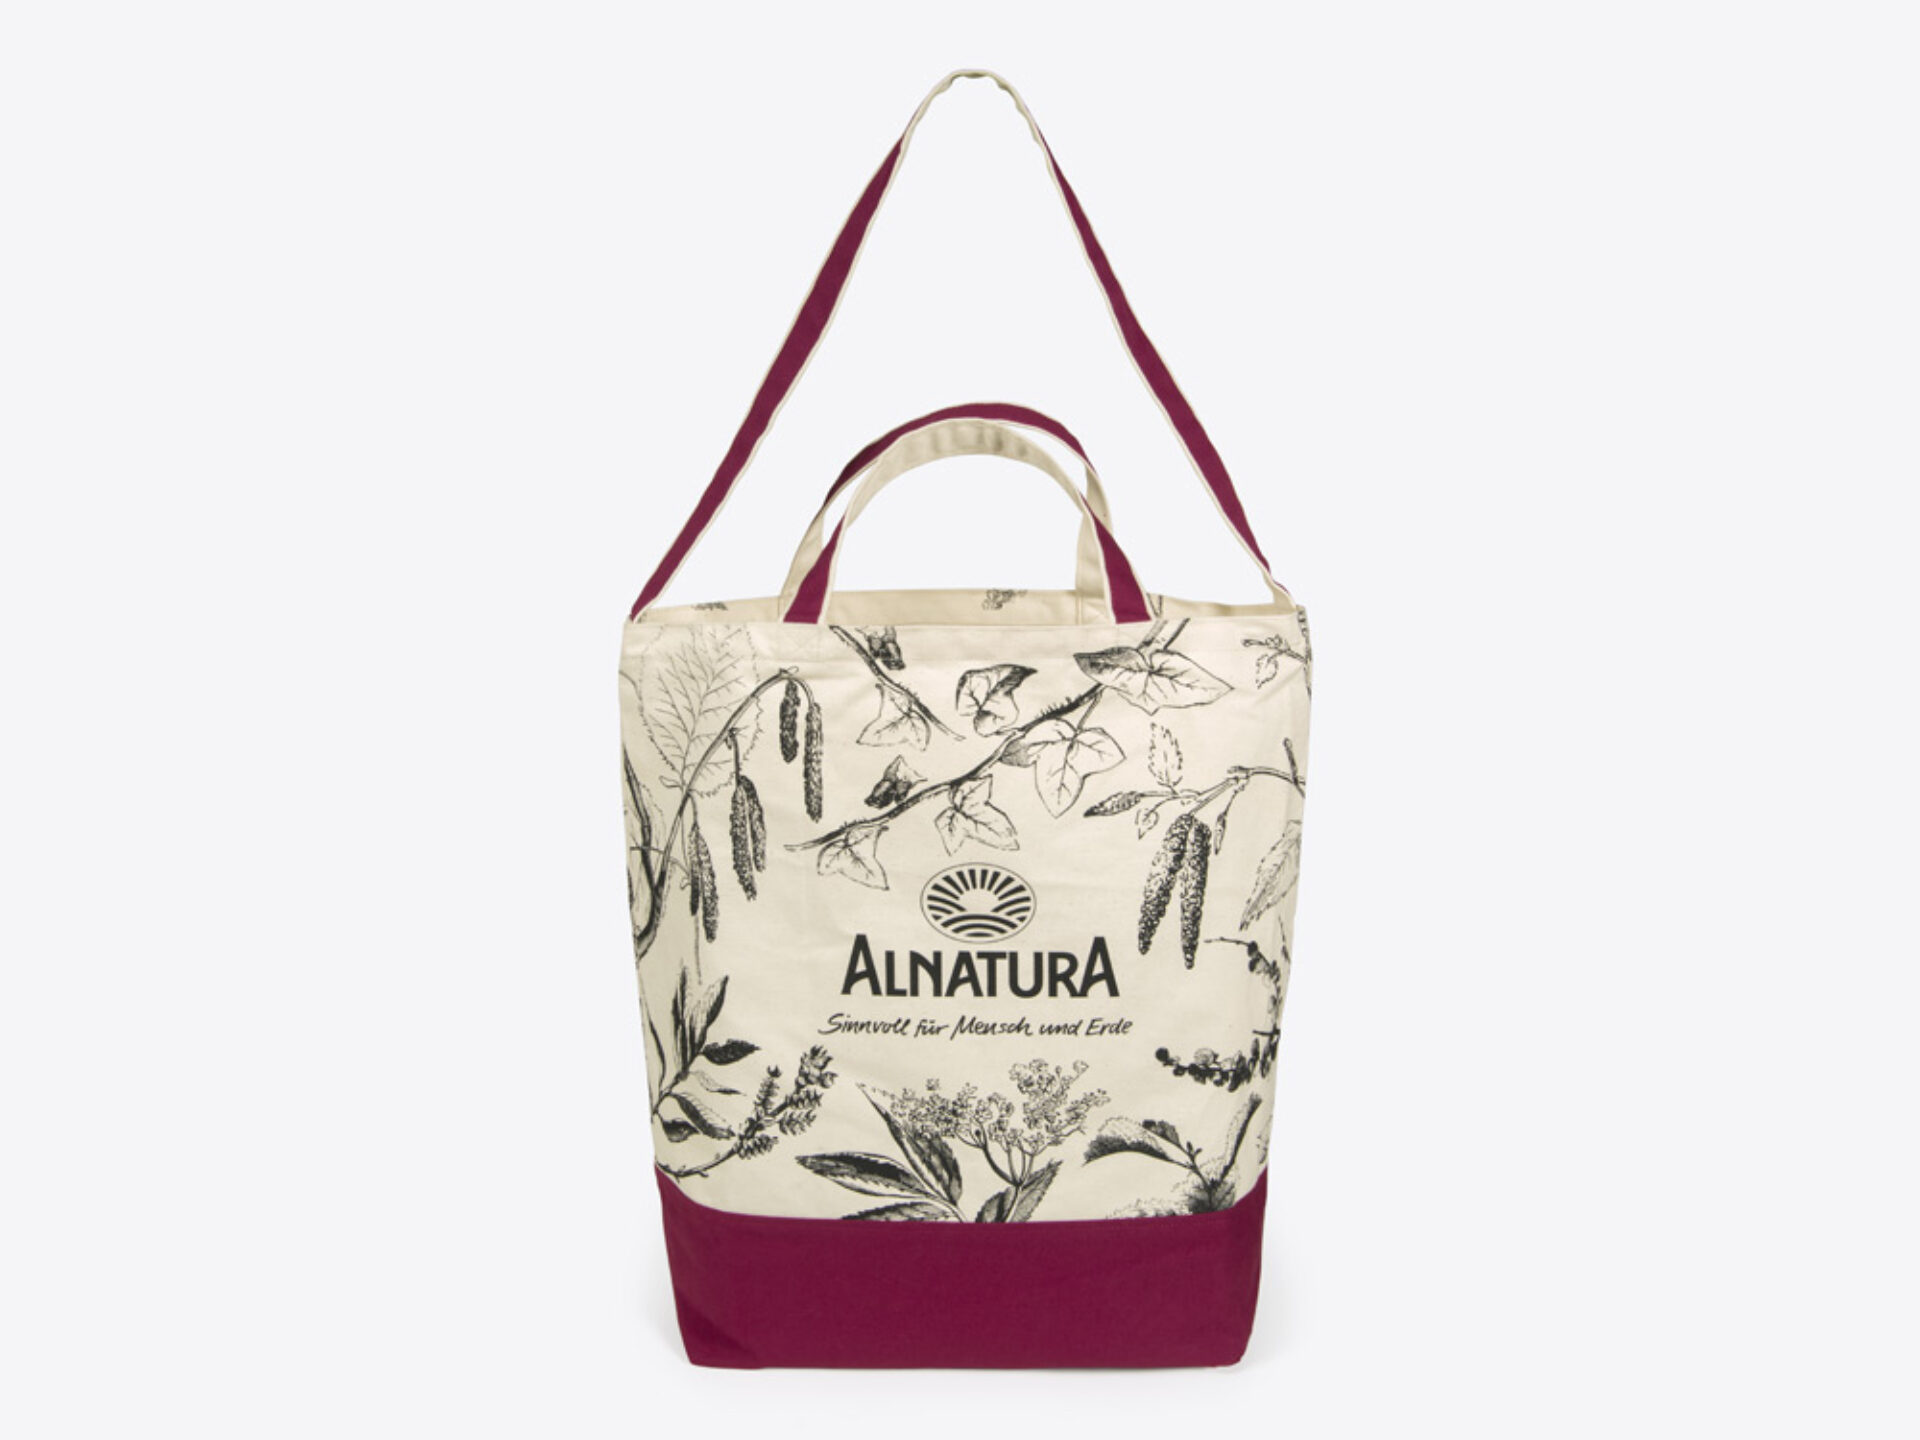 shopping-bag-mit-logo-bedruck-alnatura